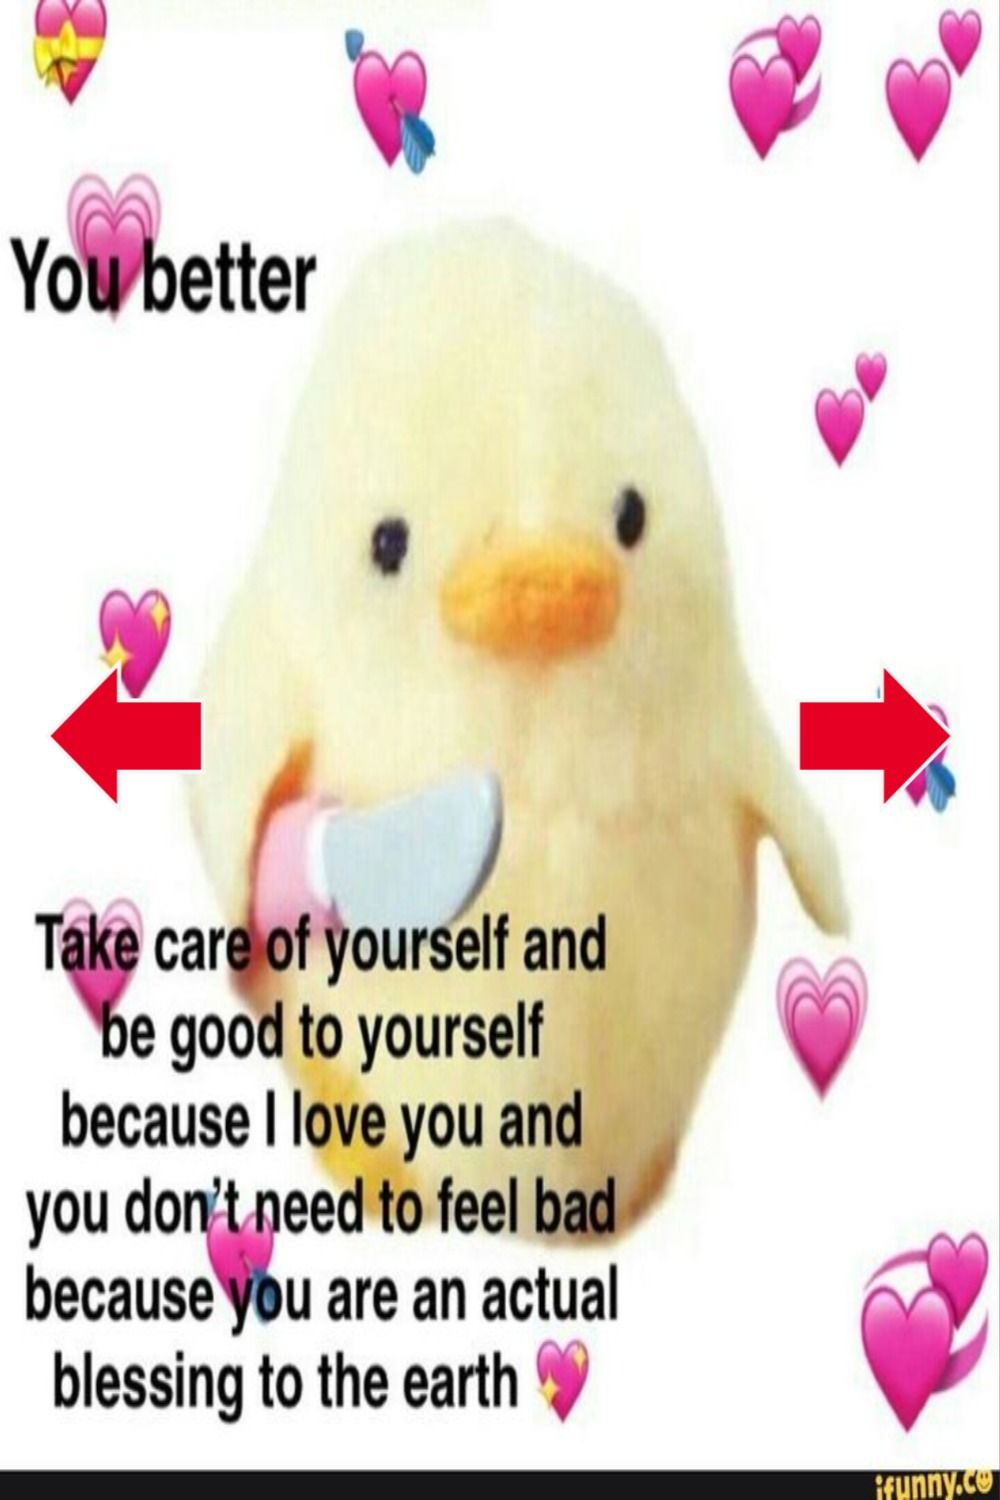 101 Best I Love You Memes To Share With The People You Love Love You Meme Cute Love Memes Wholesome Memes